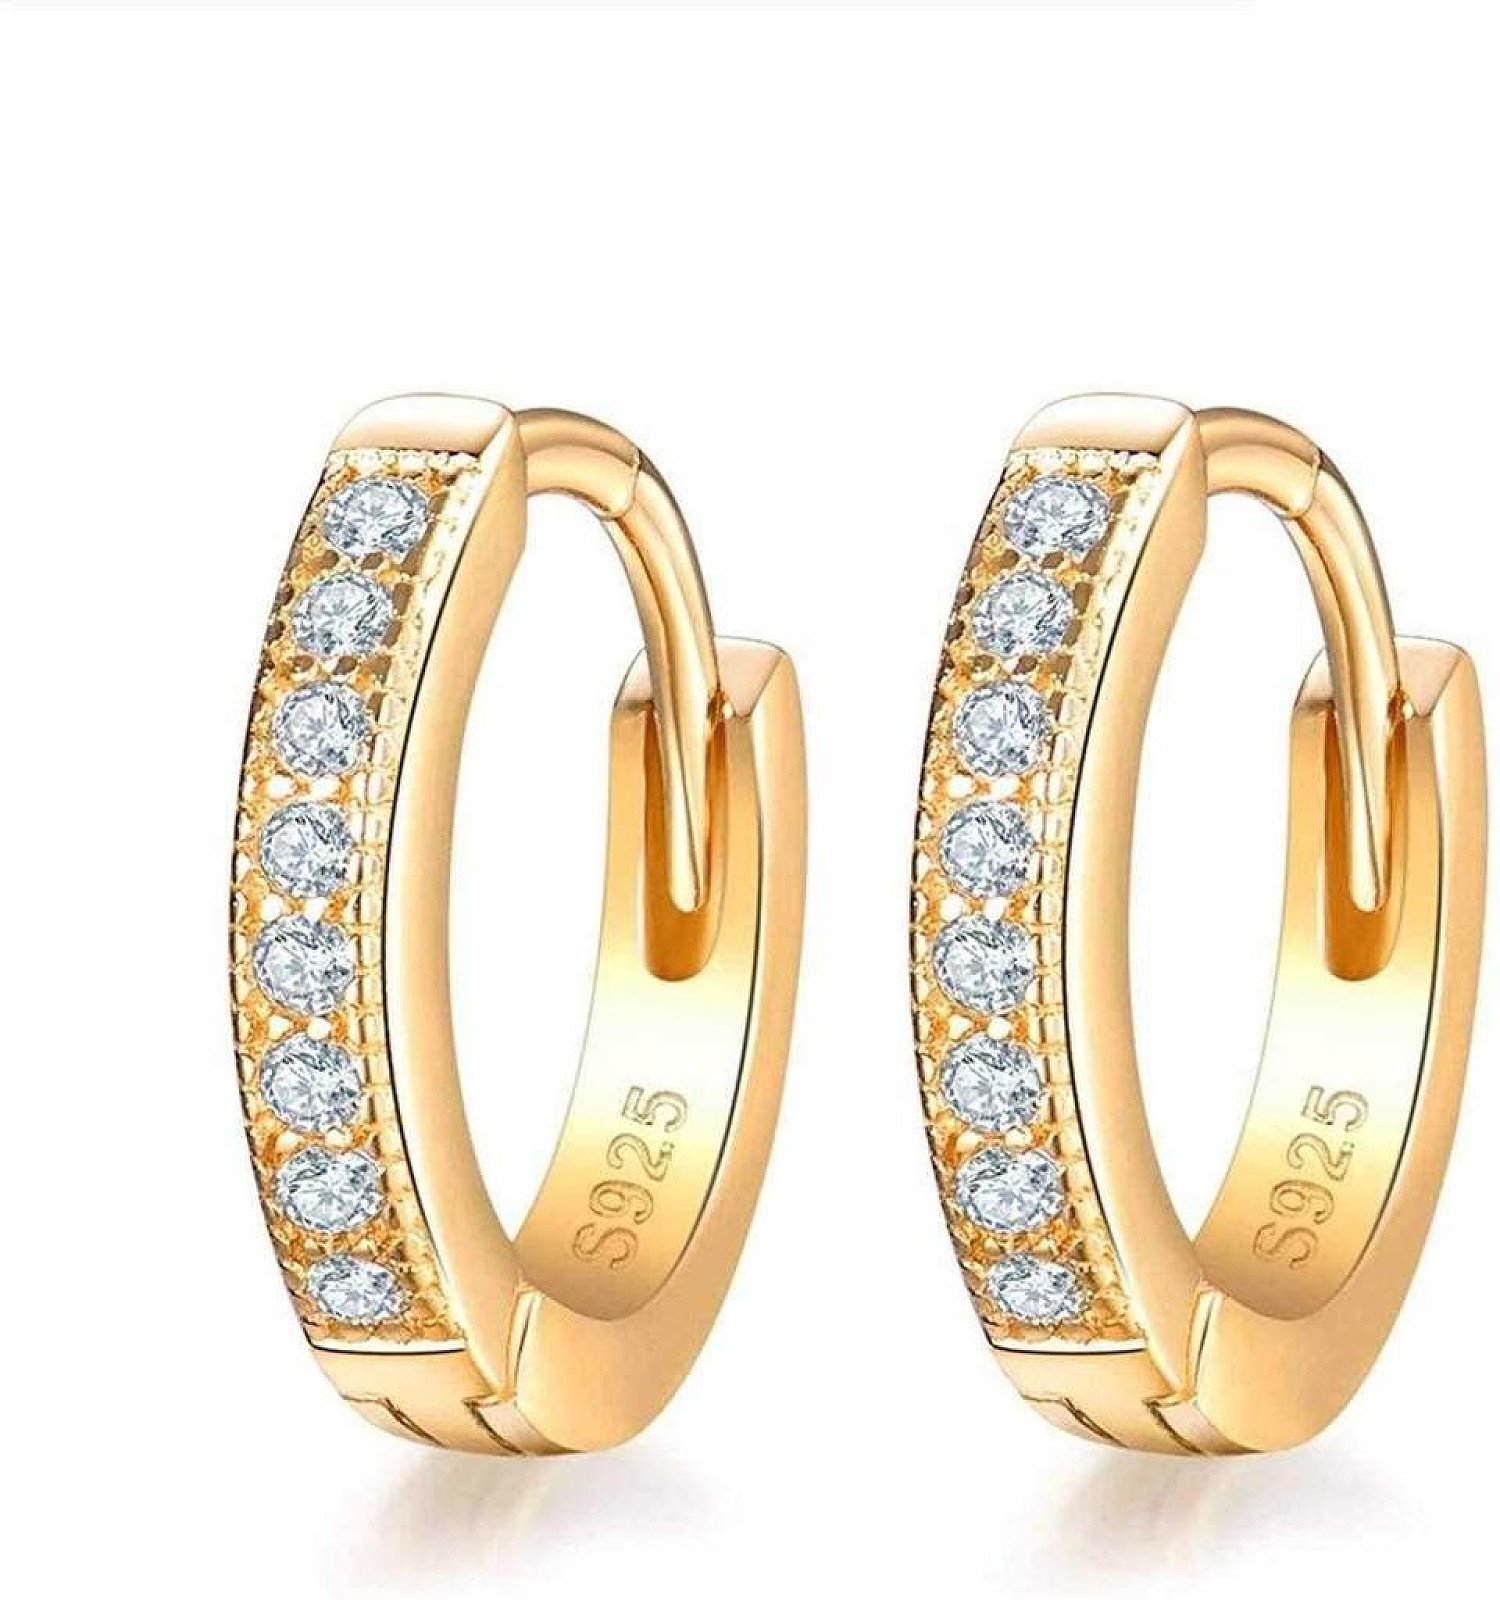 SNORSO 925 Sterling Silver Small Hoop Earrings for Women Girls with AAA Cubic Zirconia, 13mm Round